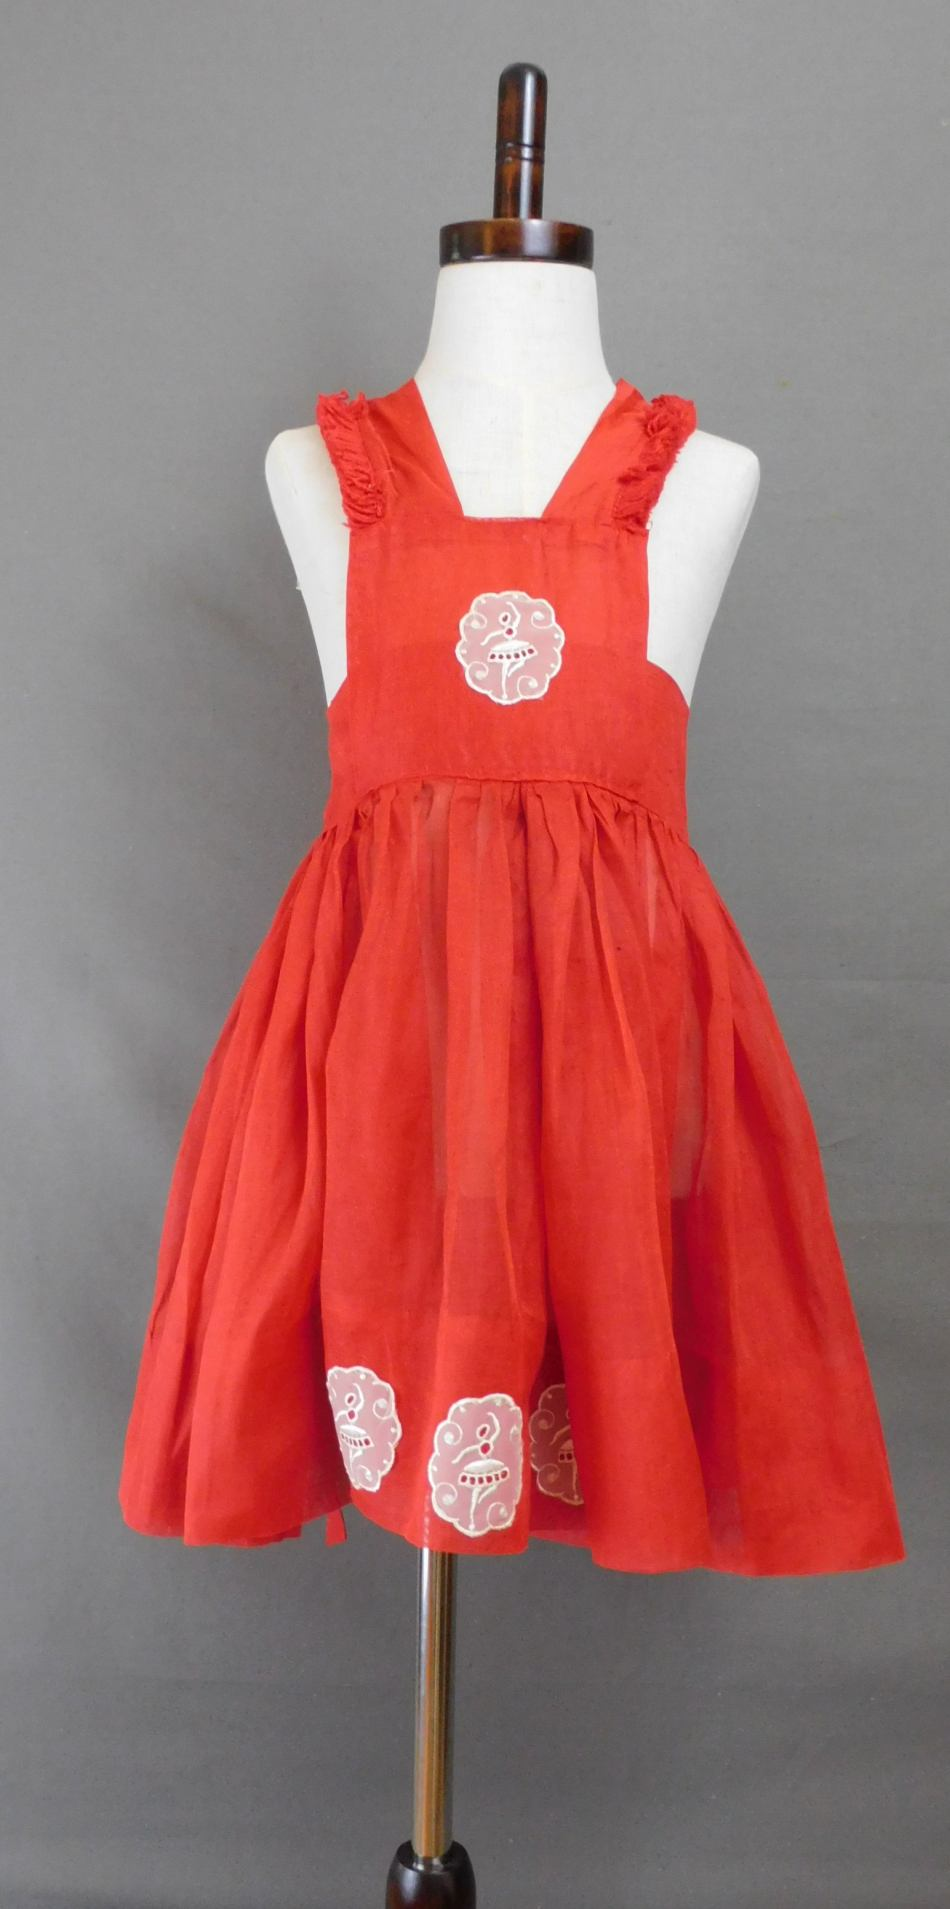 Vintage Red Organdy Pinafore Dress for Little Girl, 1950s, Ballerina Appliques, 22 inch waist